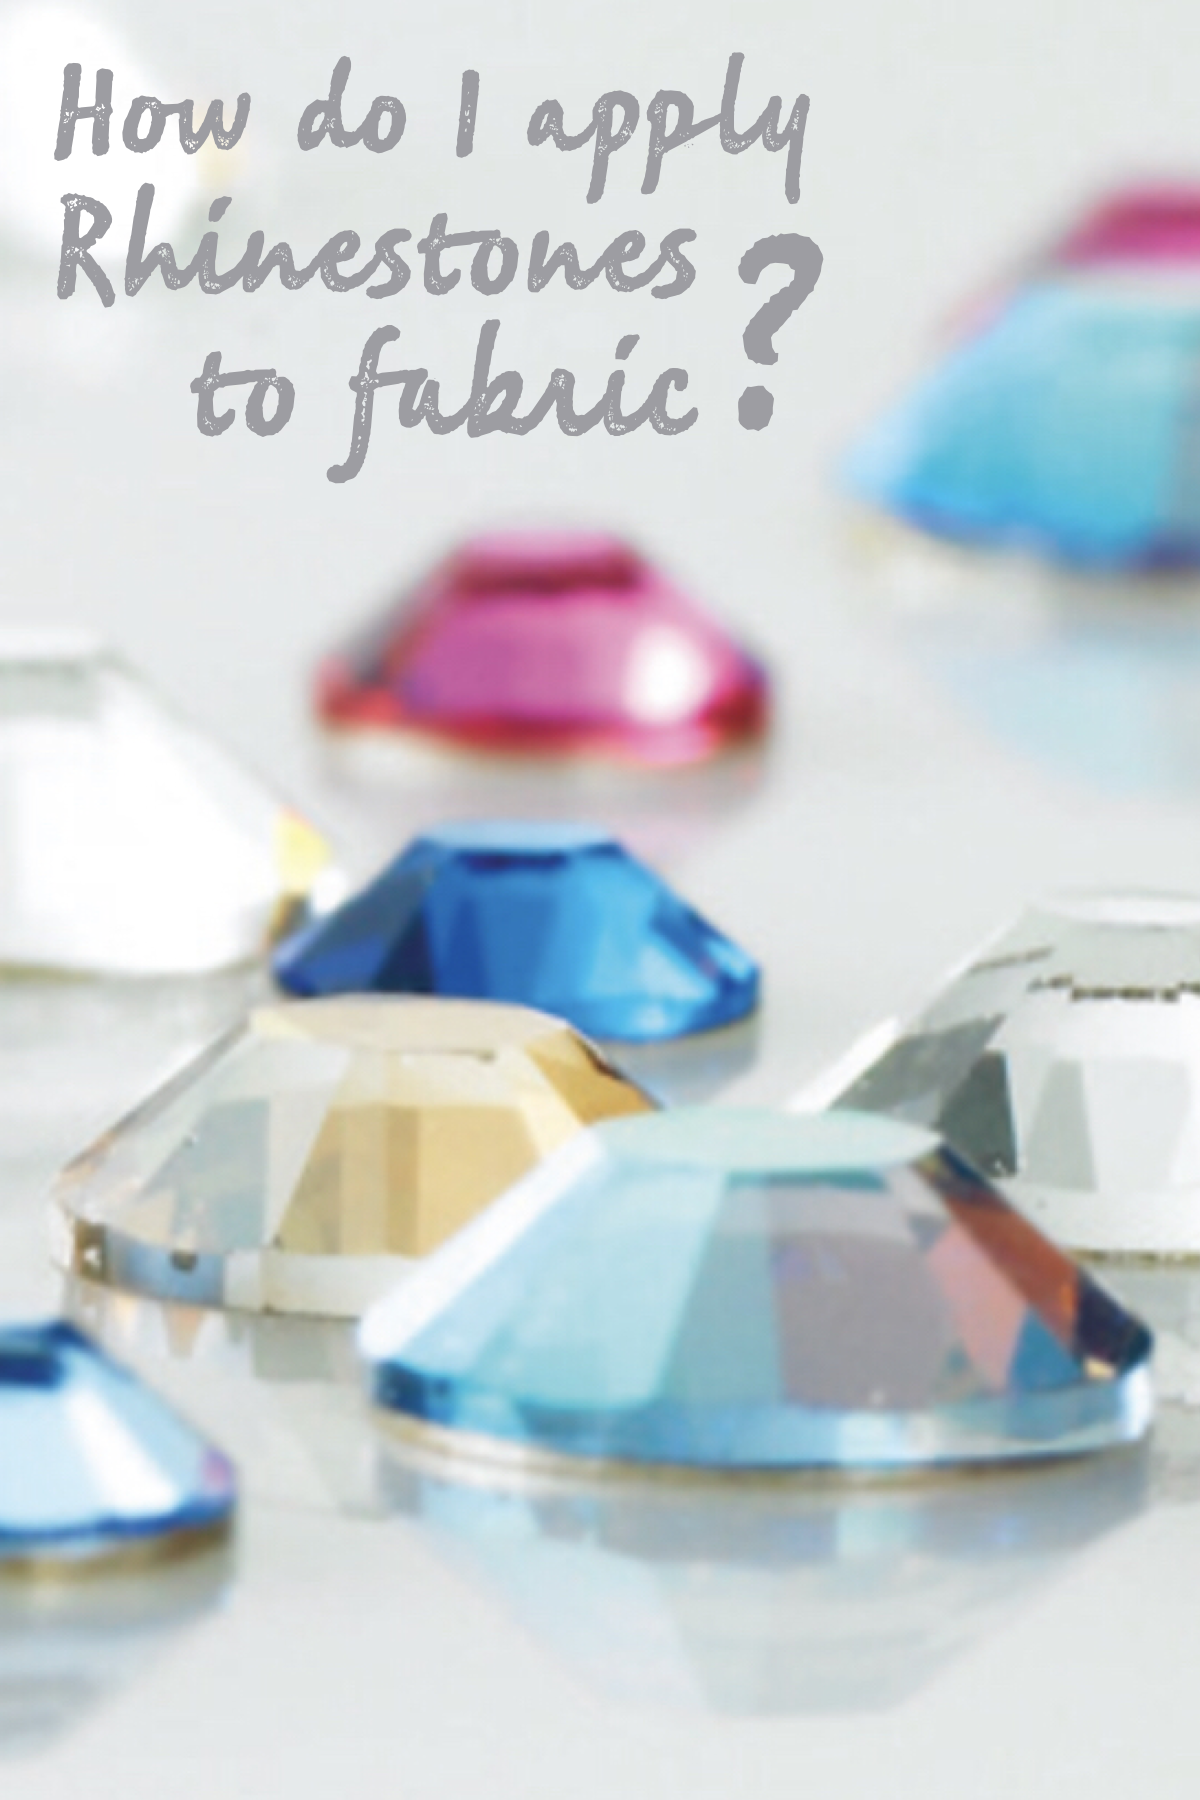 How do you apply rhinestones to fabric?